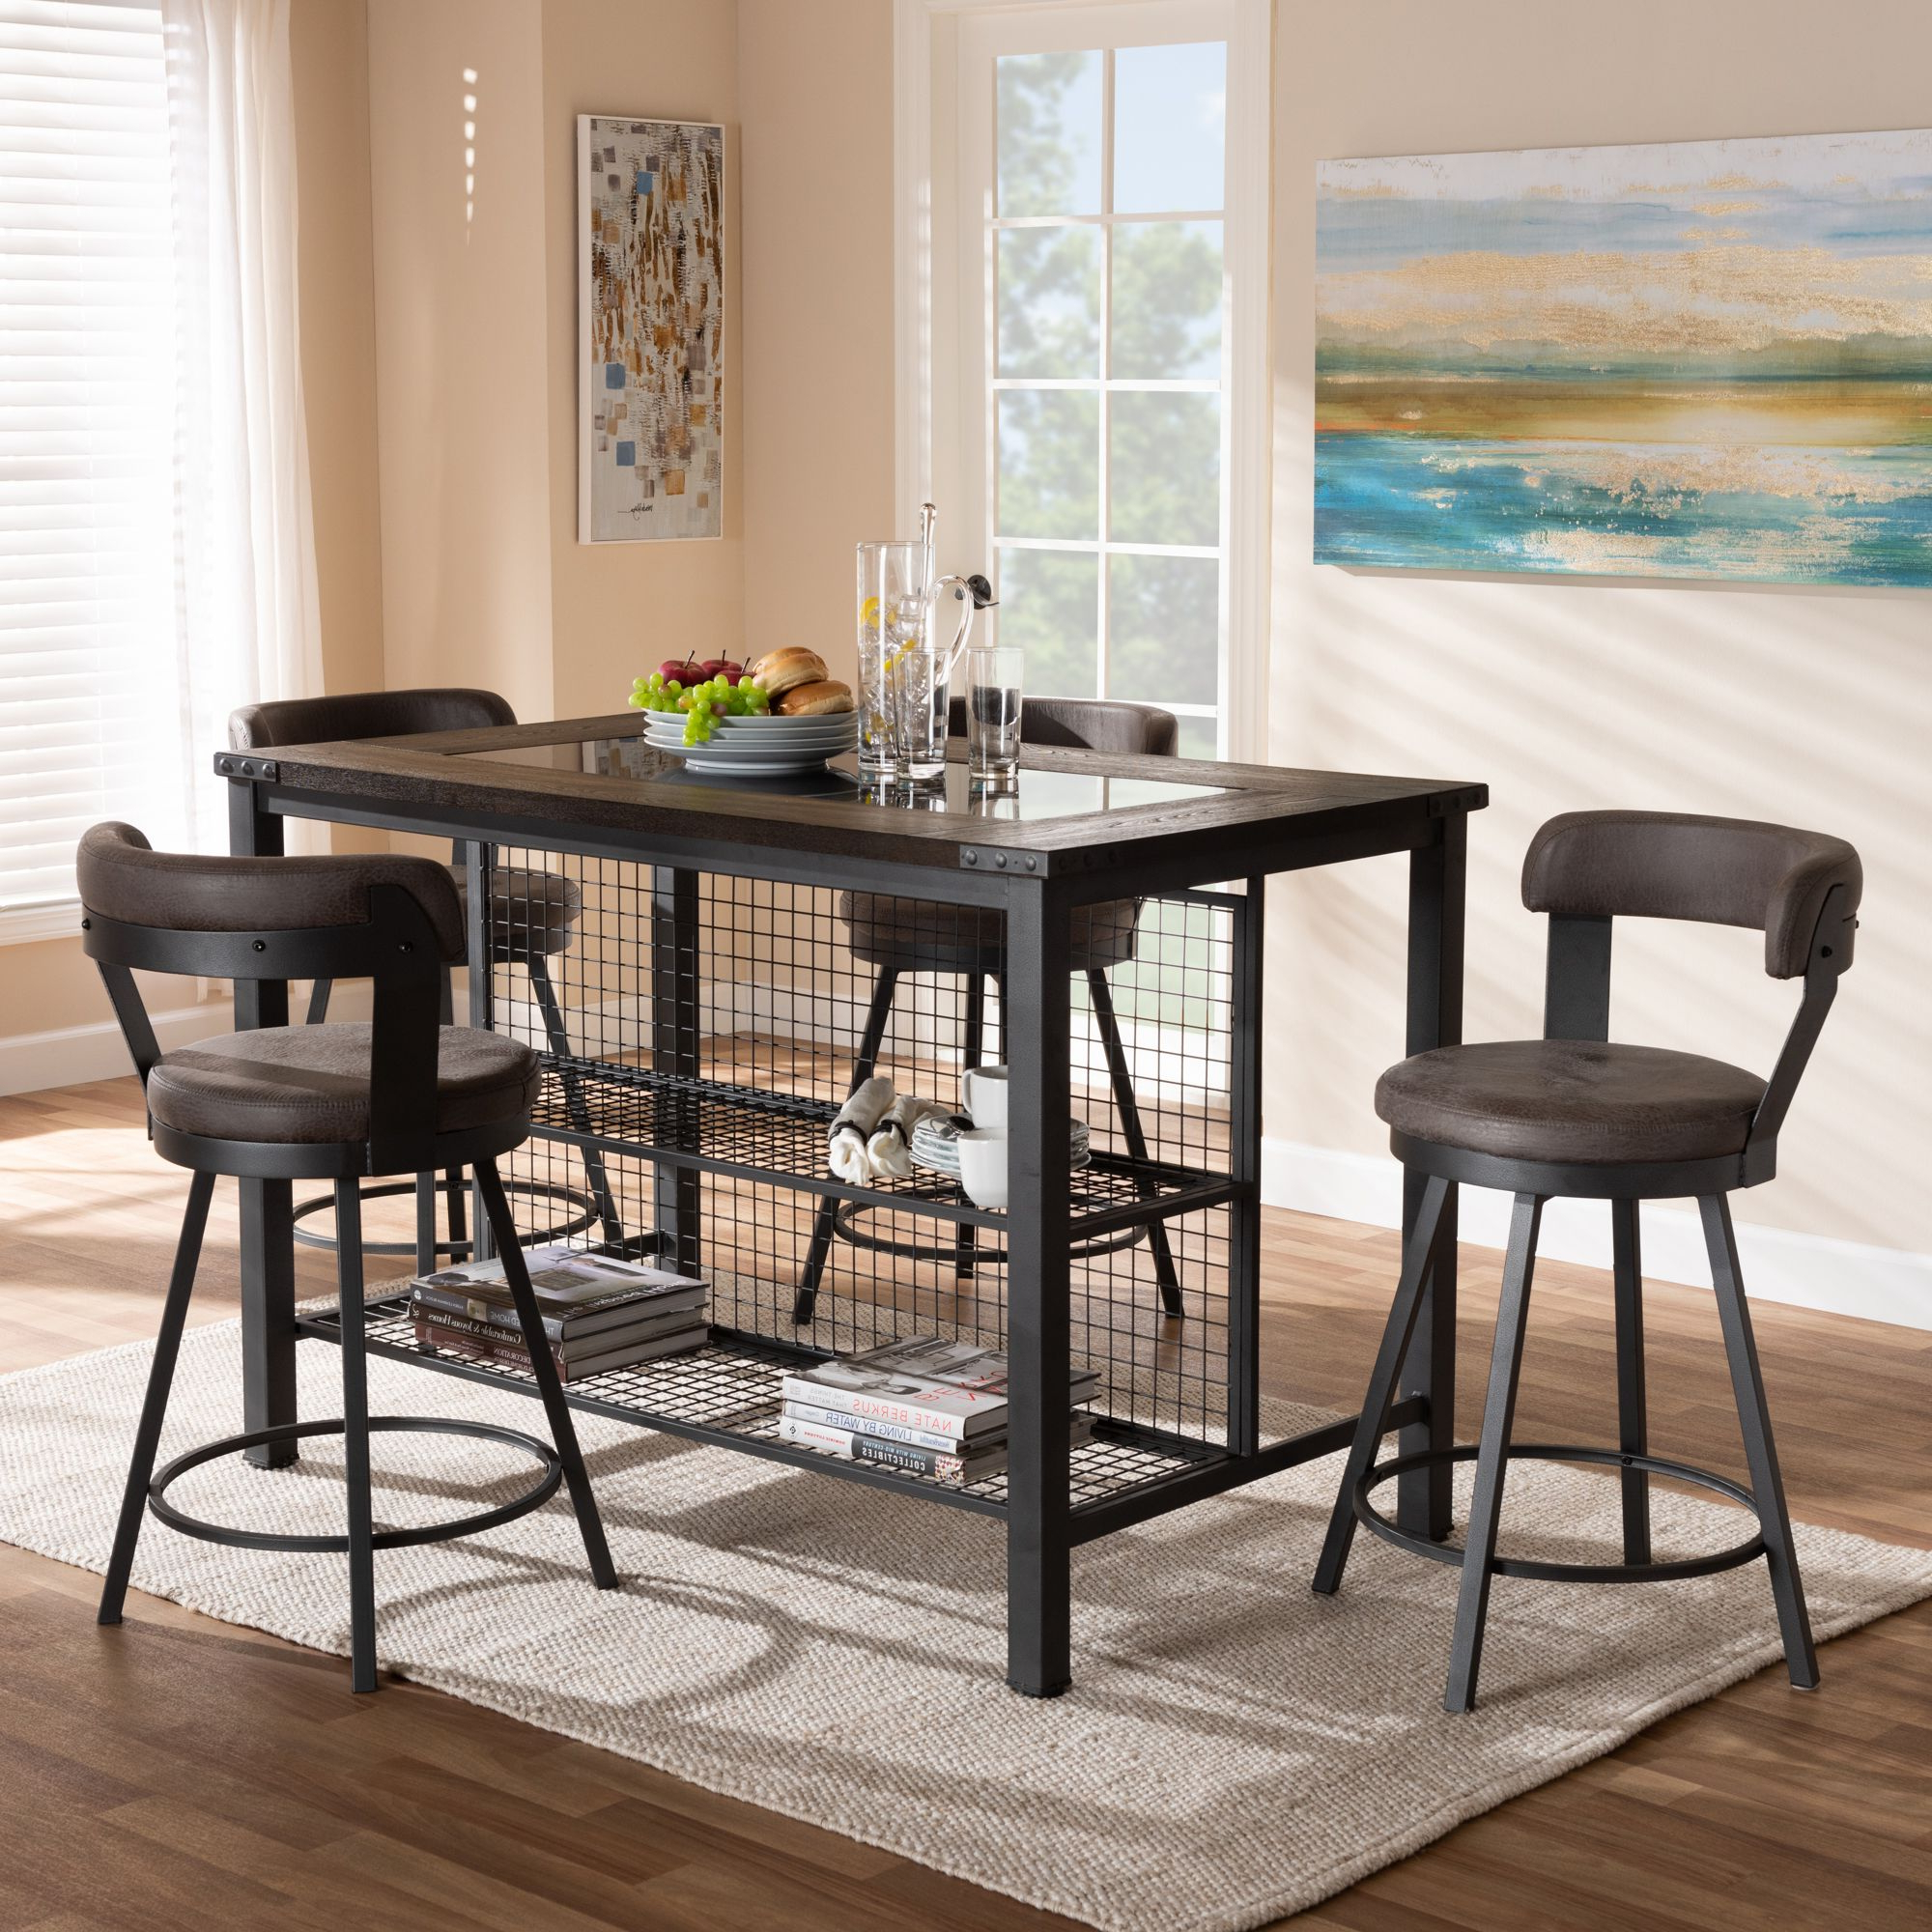 Wiggs 5 Piece Dining Sets In Well Known Baxton Studio Arcene Rustic And Industrial Antique Grey Faux Leather (View 17 of 25)